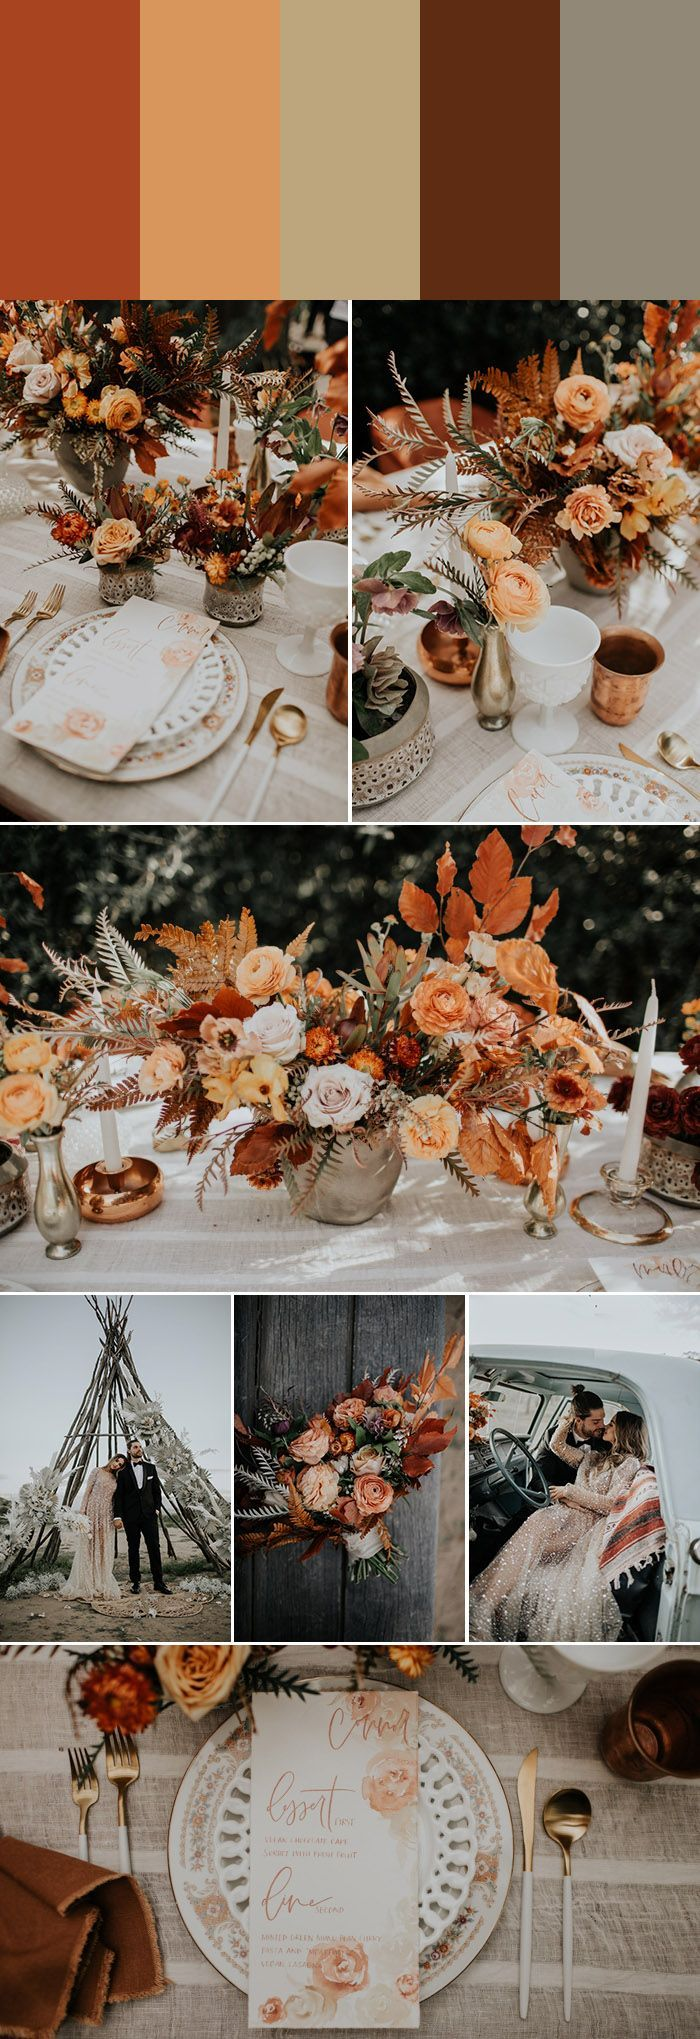 6 Rust-Colored Wedding Palettes to Create a Retro Vibe